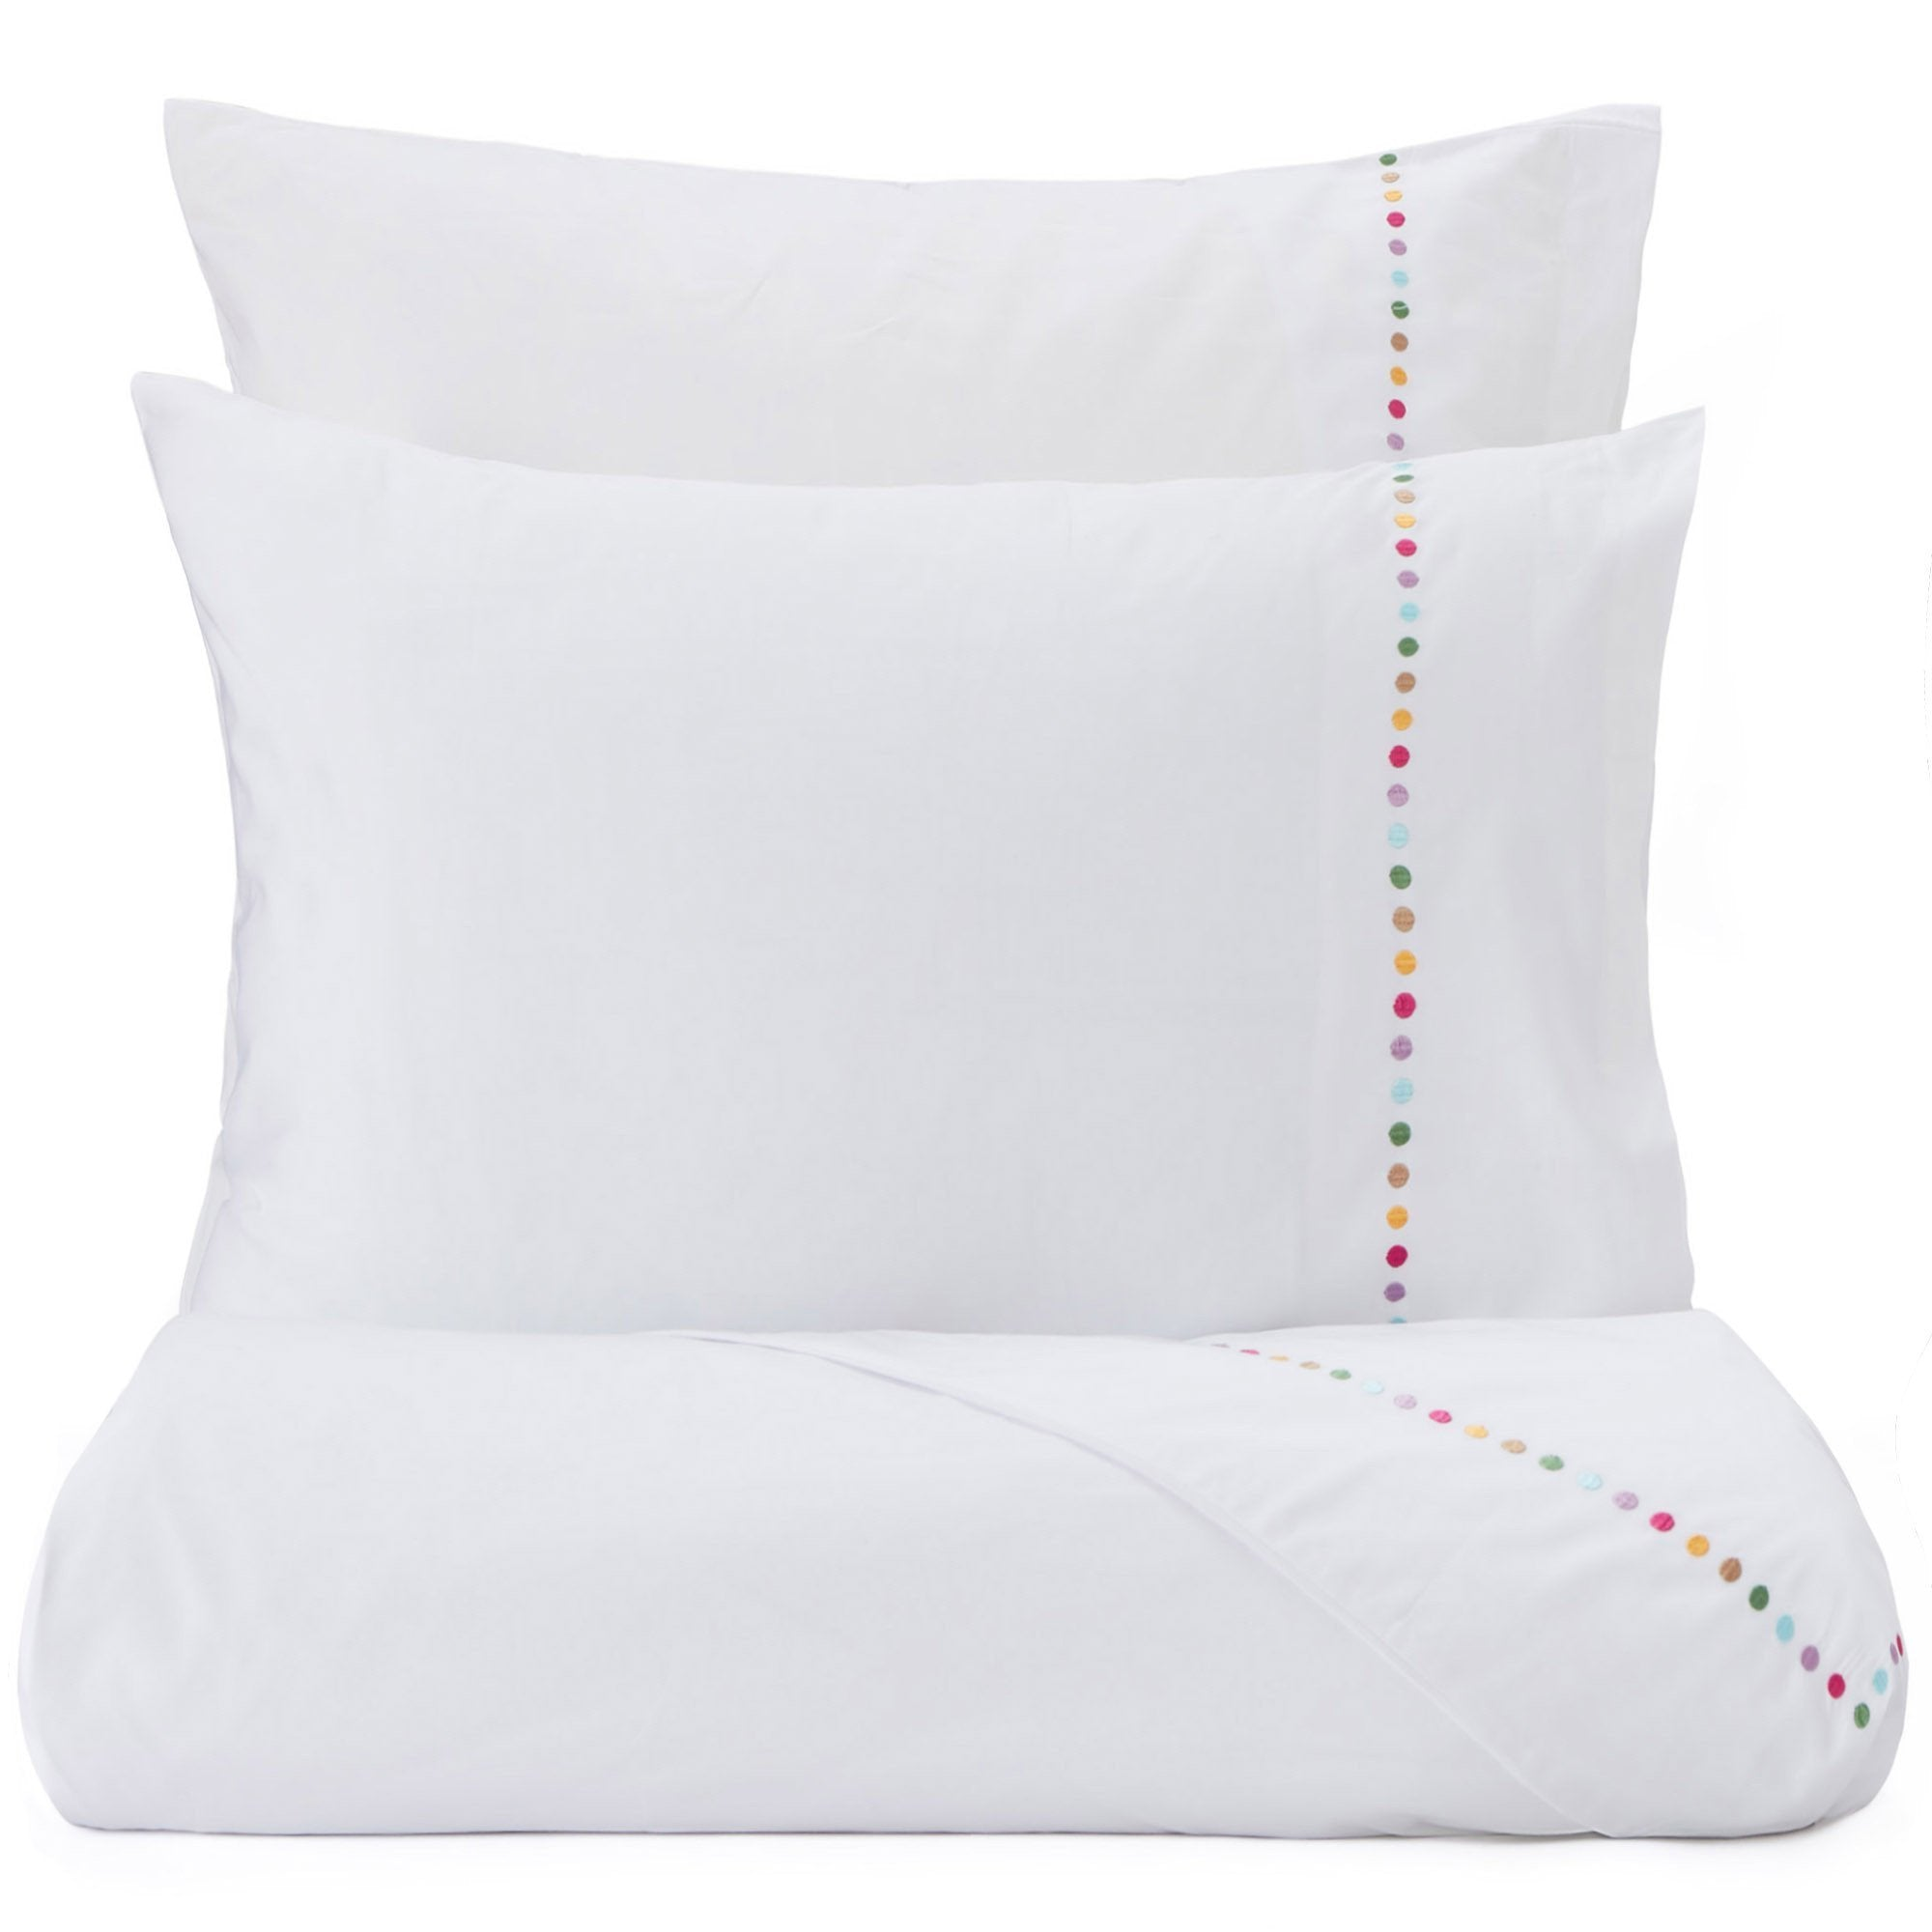 Mahina duvet cover, white & multicolour, 100% cotton